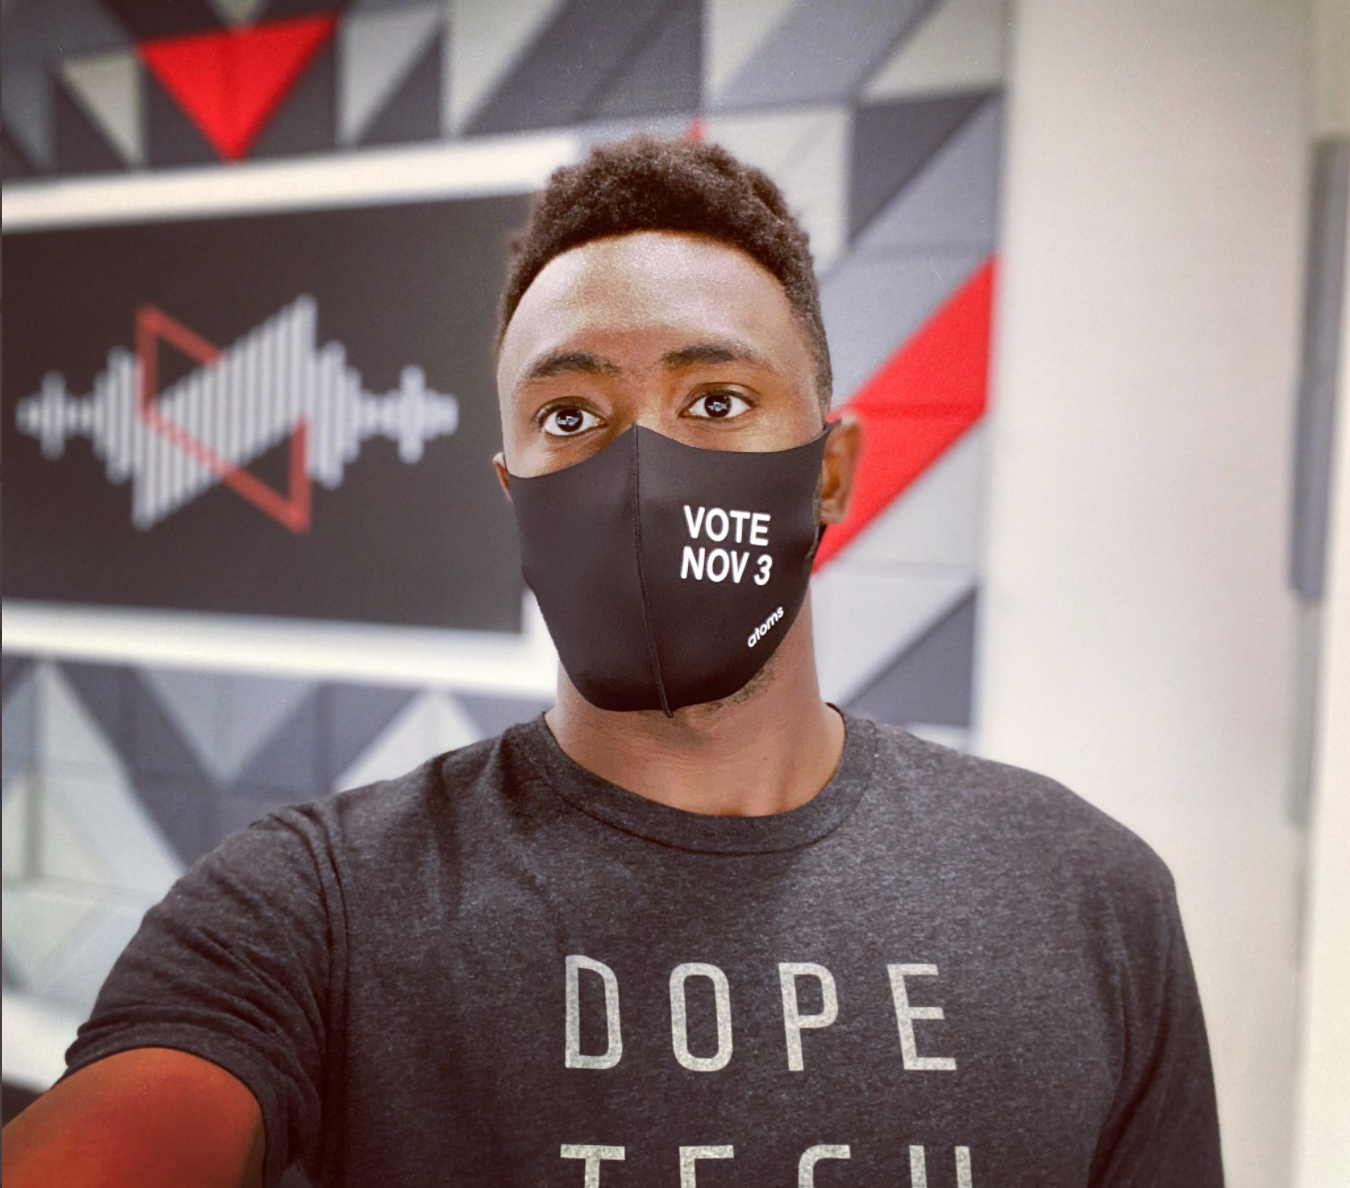 MKBHD host Marques Brownlee in his VOTE NOV 3 Atoms mask.